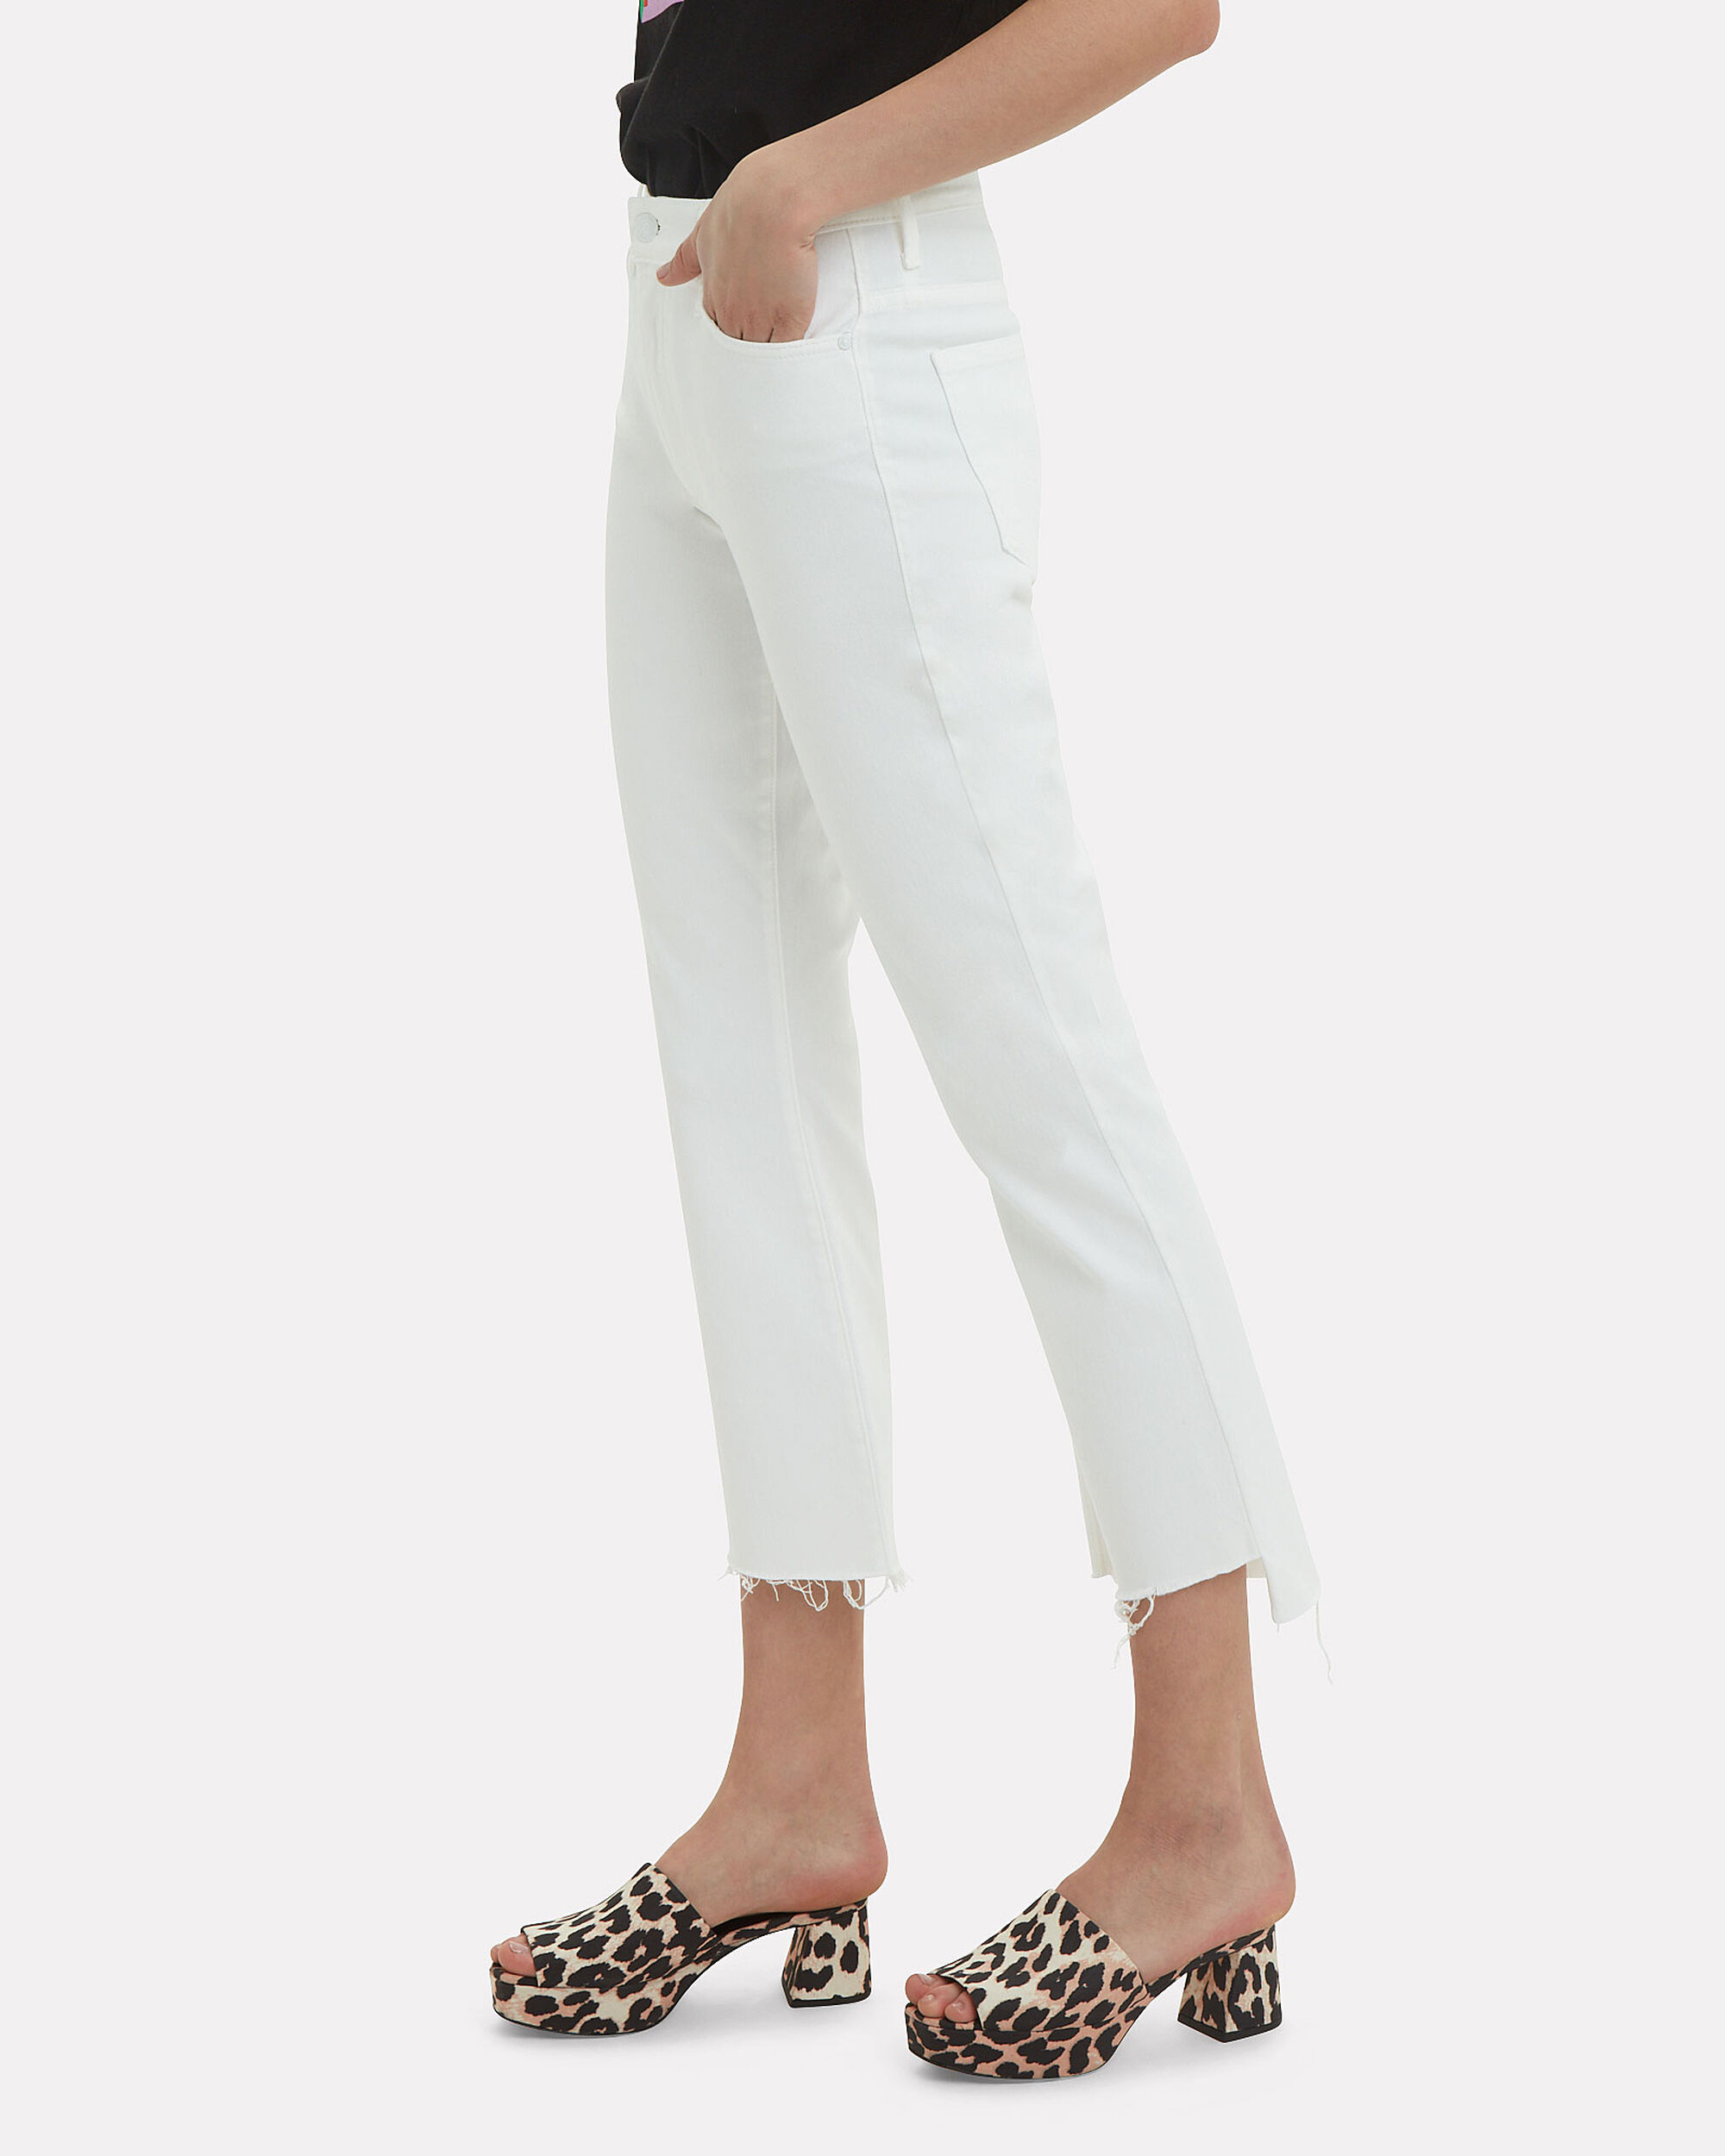 Insider Crop Step Fray White Jeans, WHITE, hi-res